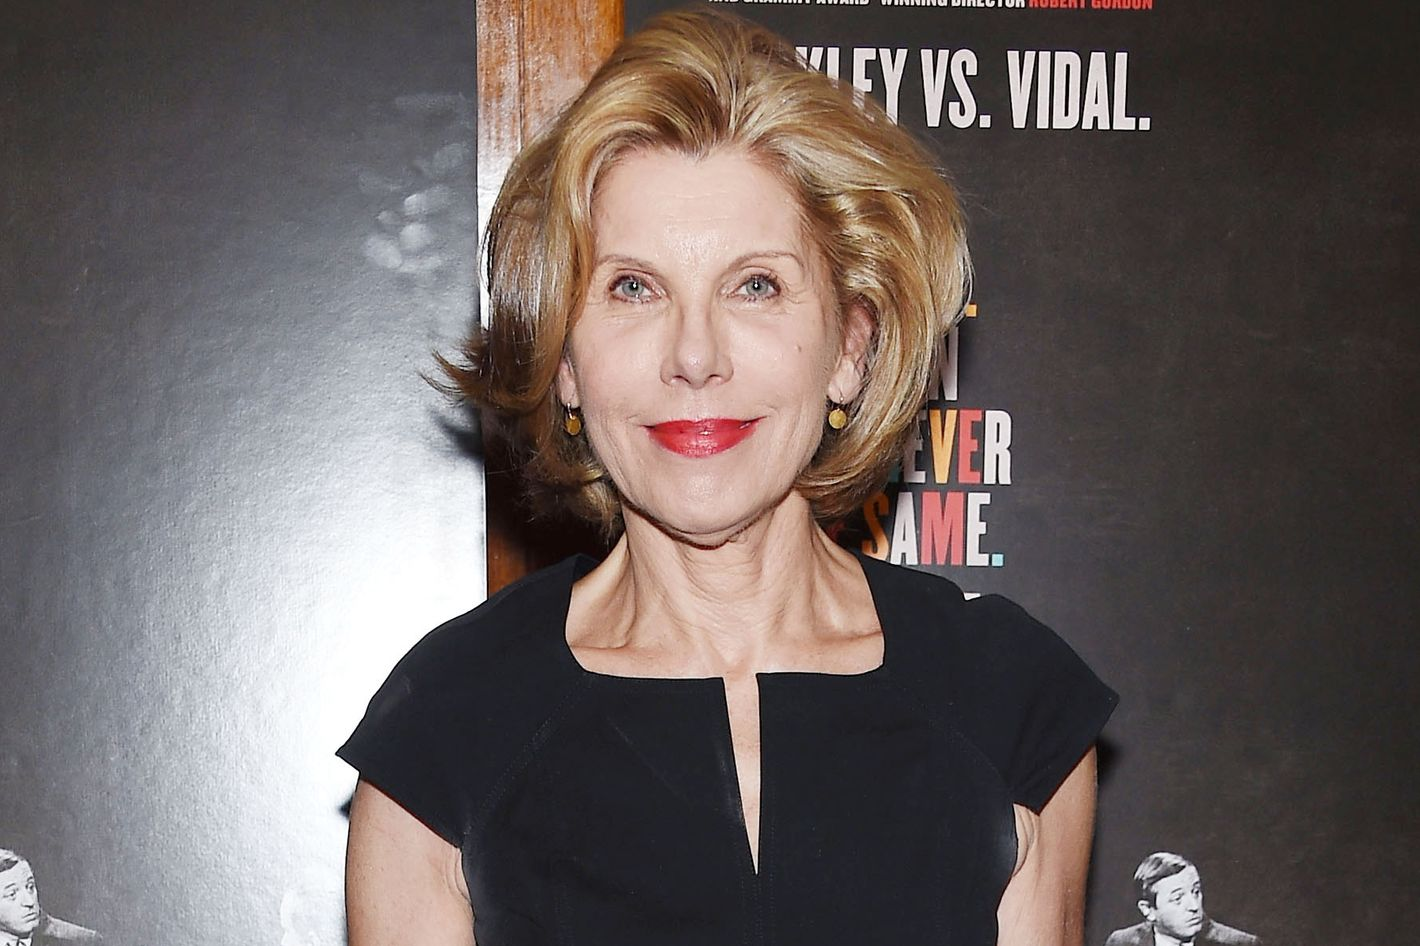 Christine Baranski nudes (18 foto and video), Sexy, Fappening, Instagram, butt 2015